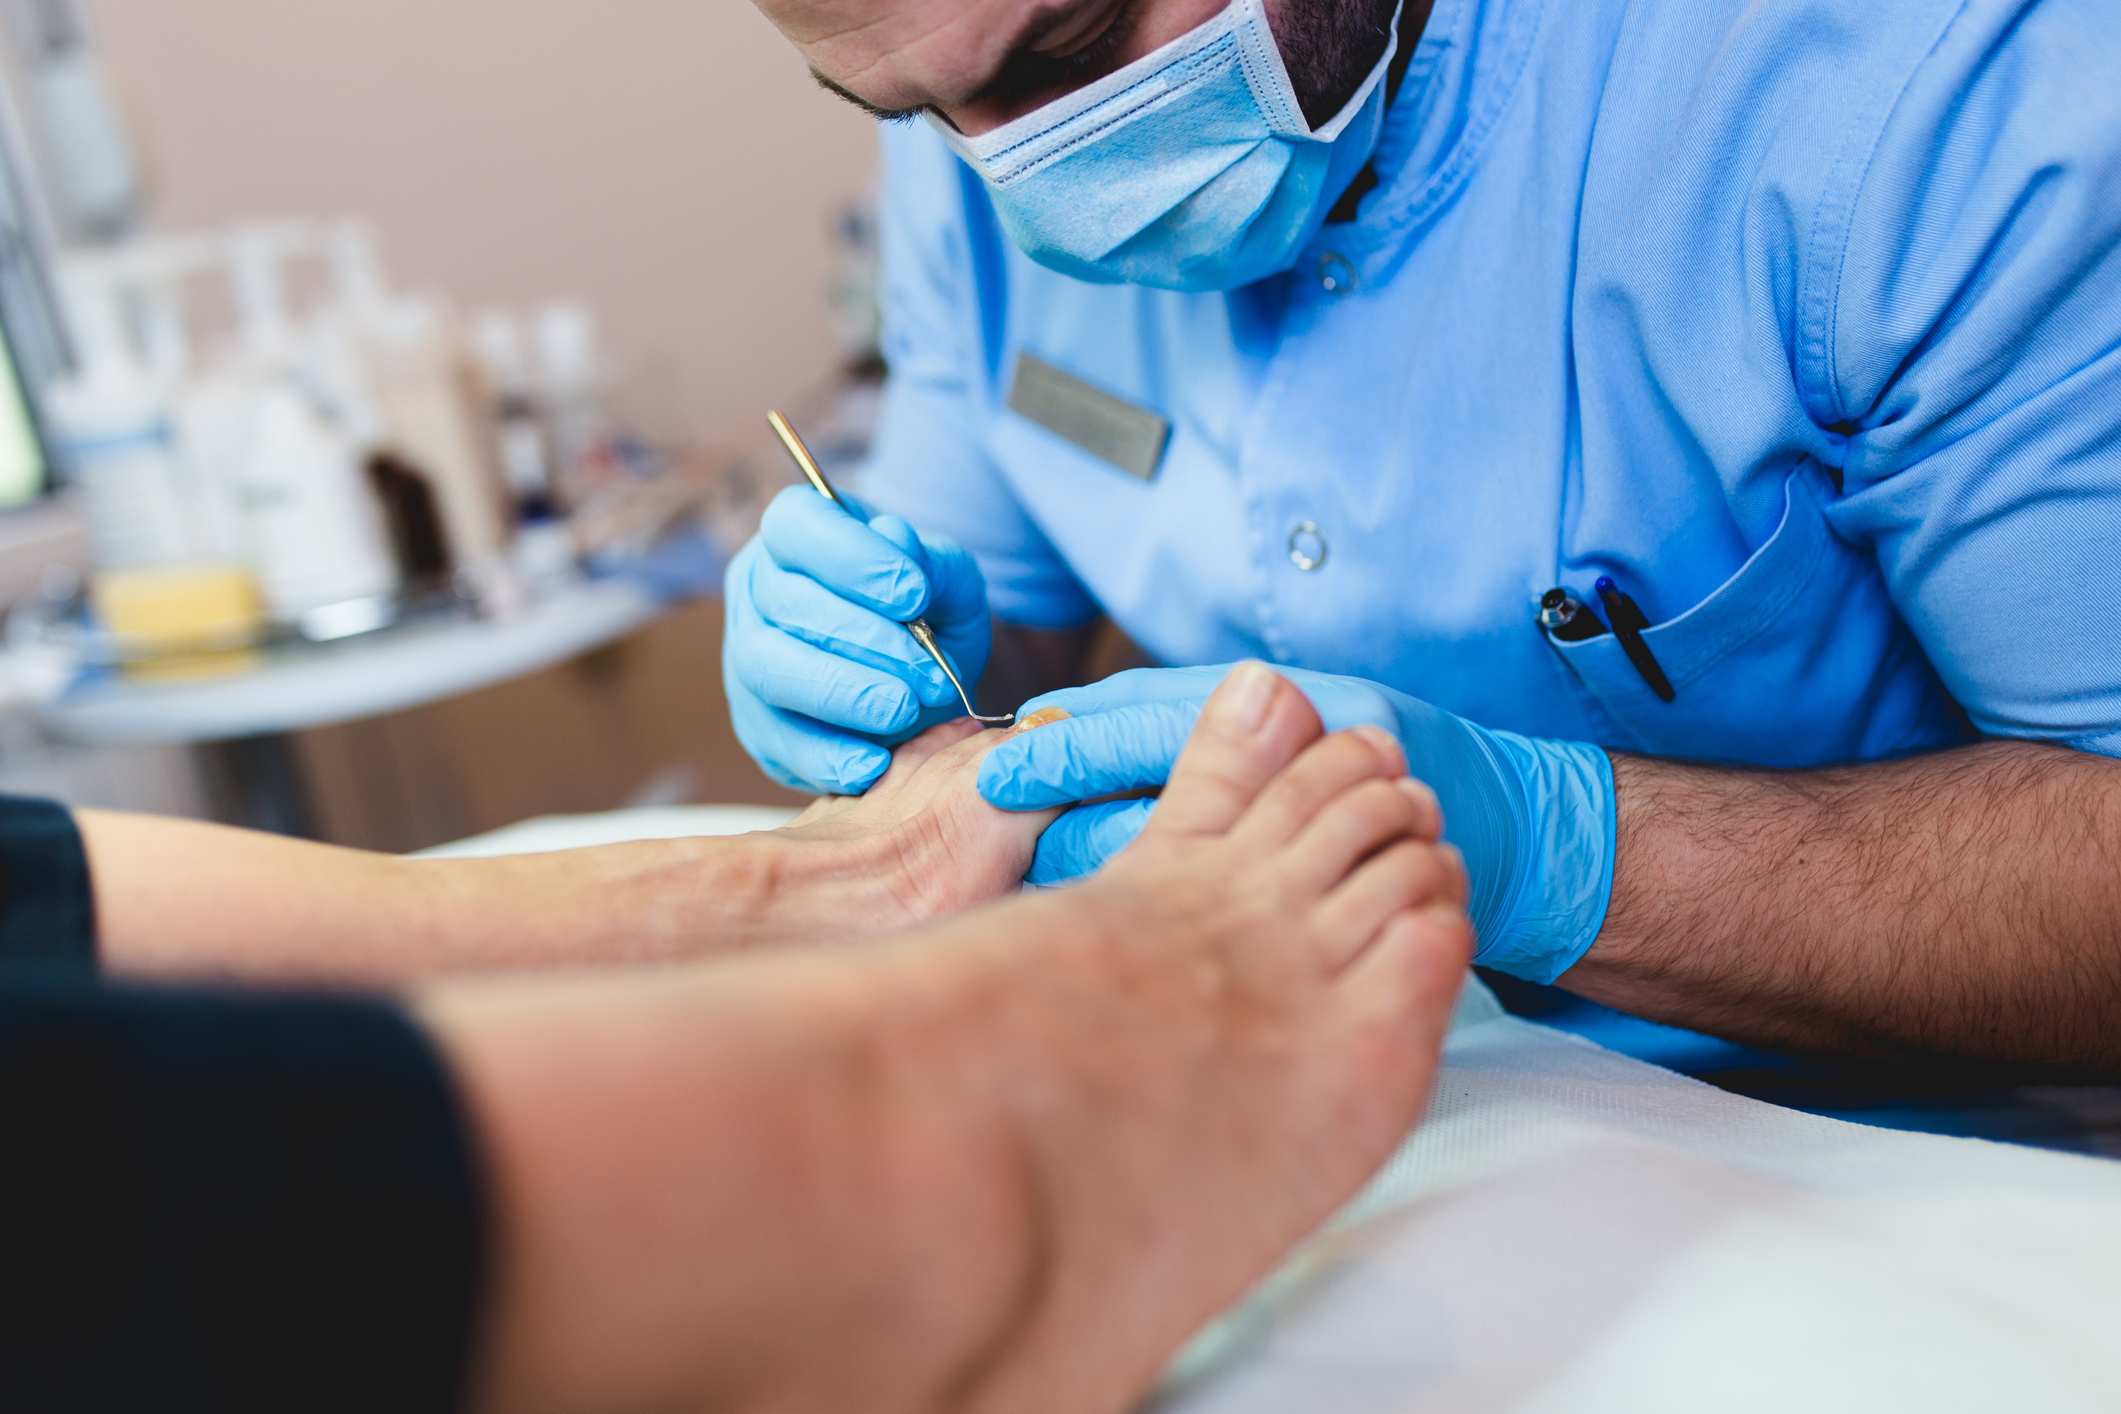 Reflexology Massage vs. a Podiatrist: How Can One Help the Other?